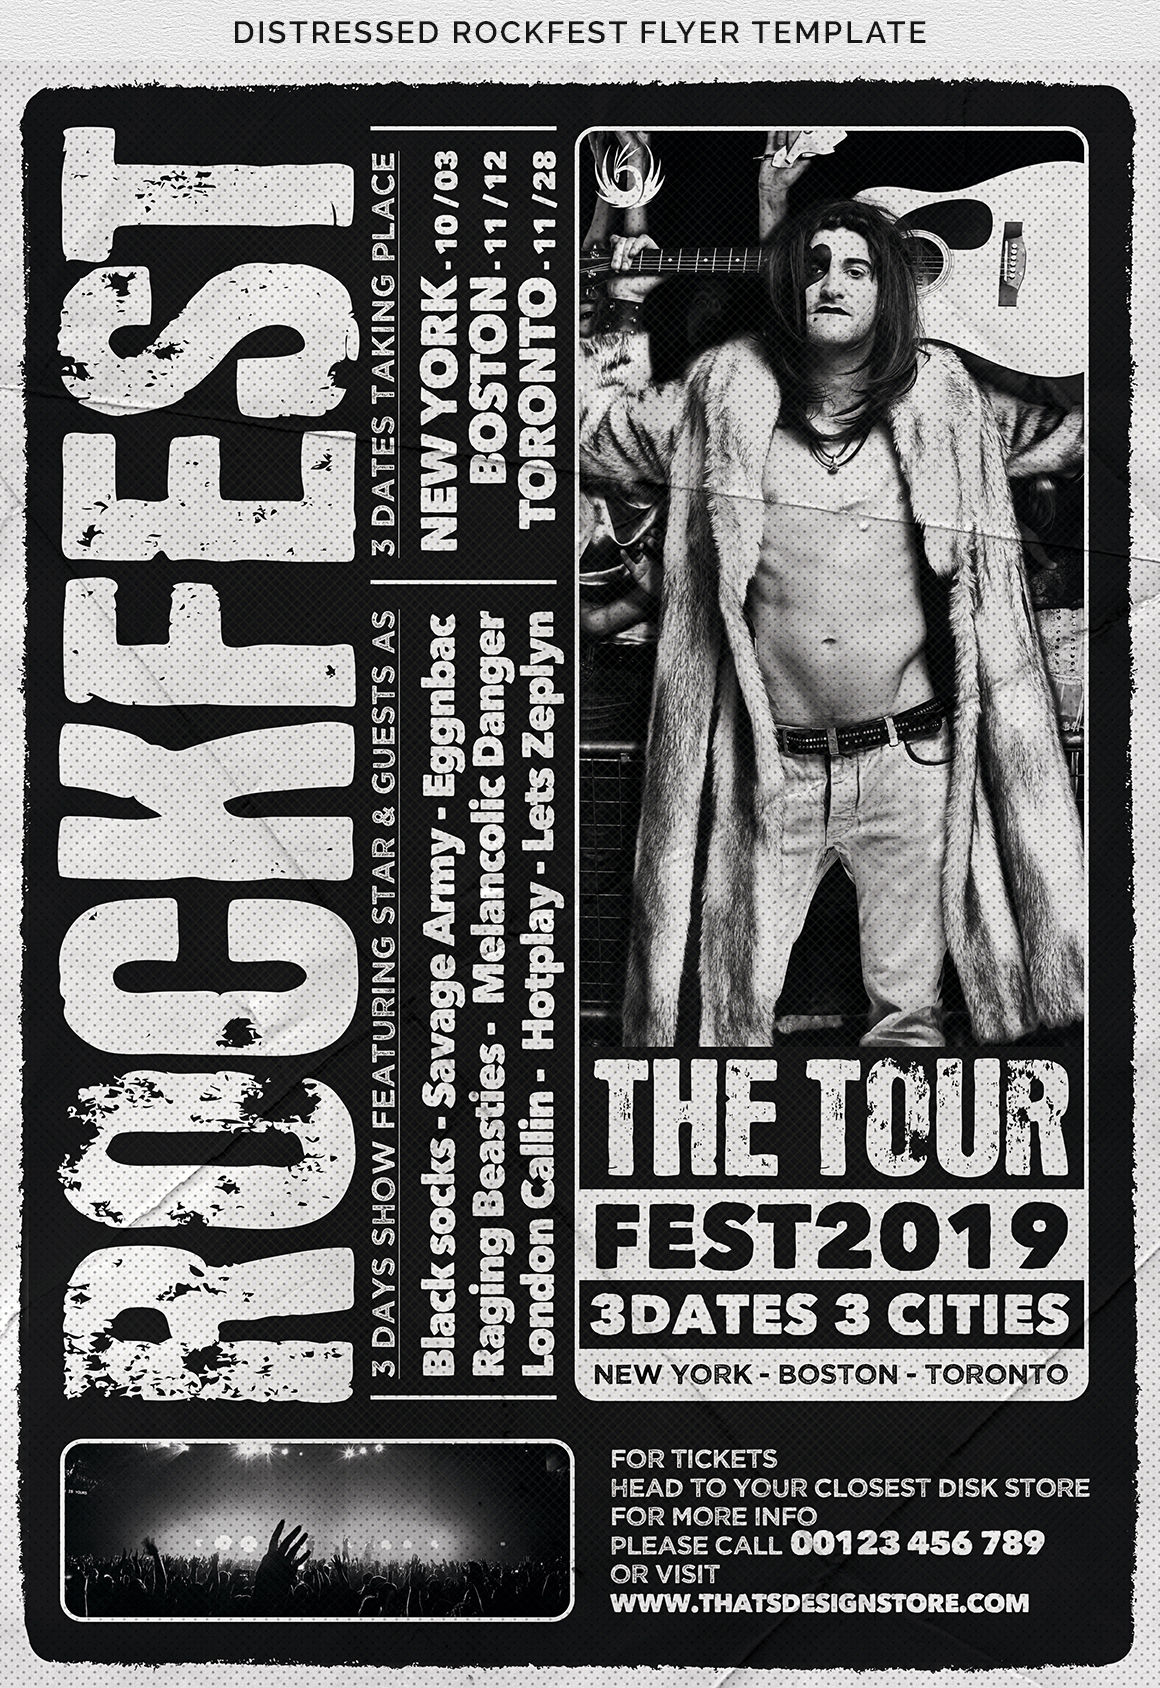 Distressed Rockfest Flyer Template example image 12